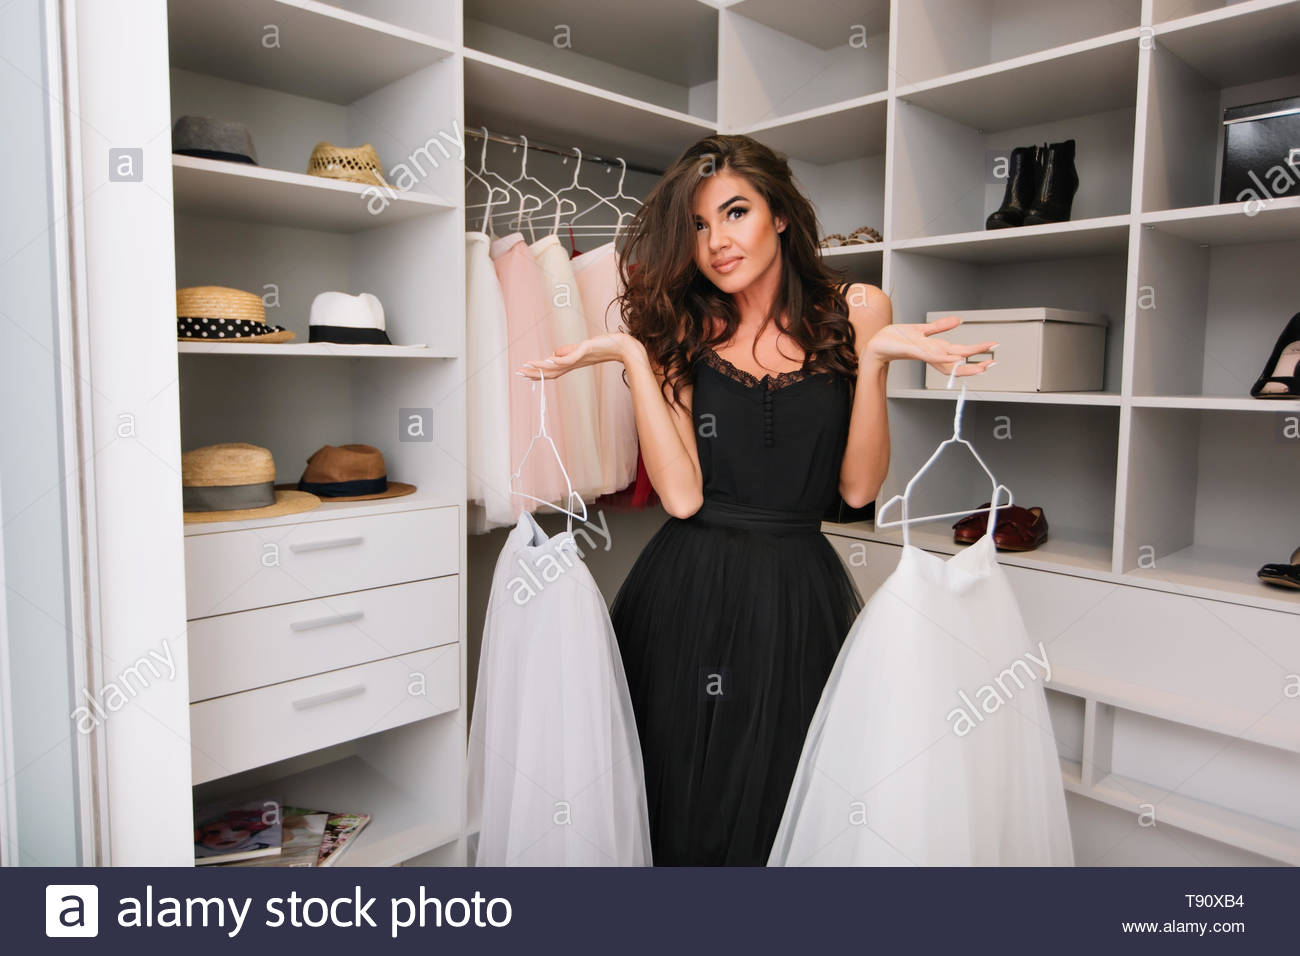 Beautiful woman with brown long curly hair in nice wardrobe around clothes, hats, shoes, holding white fluffy skirts, deciding what to wear. Model with fashionable  look, wearing black elegant dress. - Stock Image